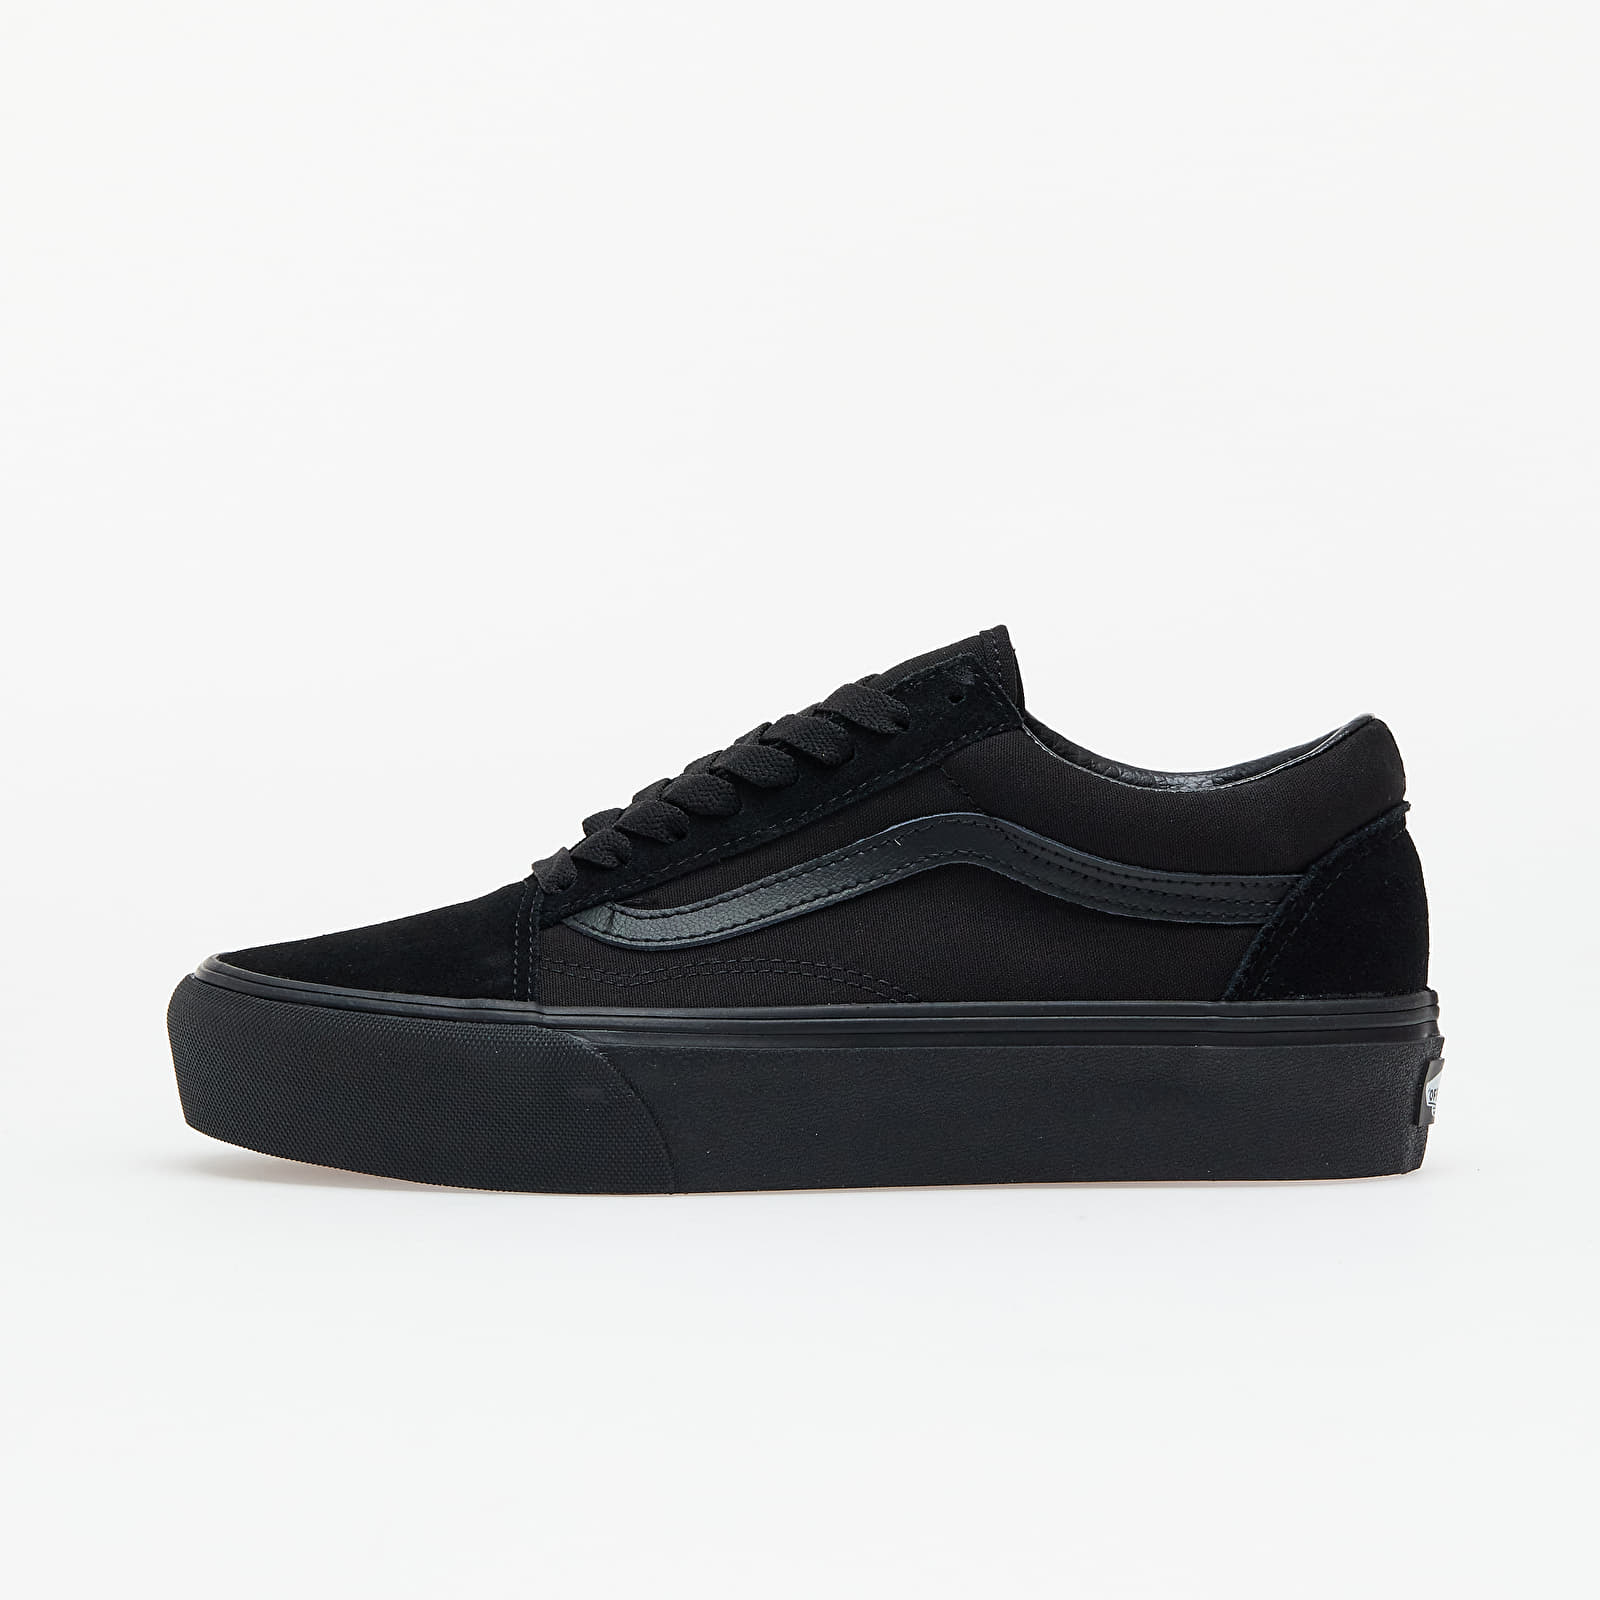 Men's shoes Vans Old Skool Platform Black/ Black